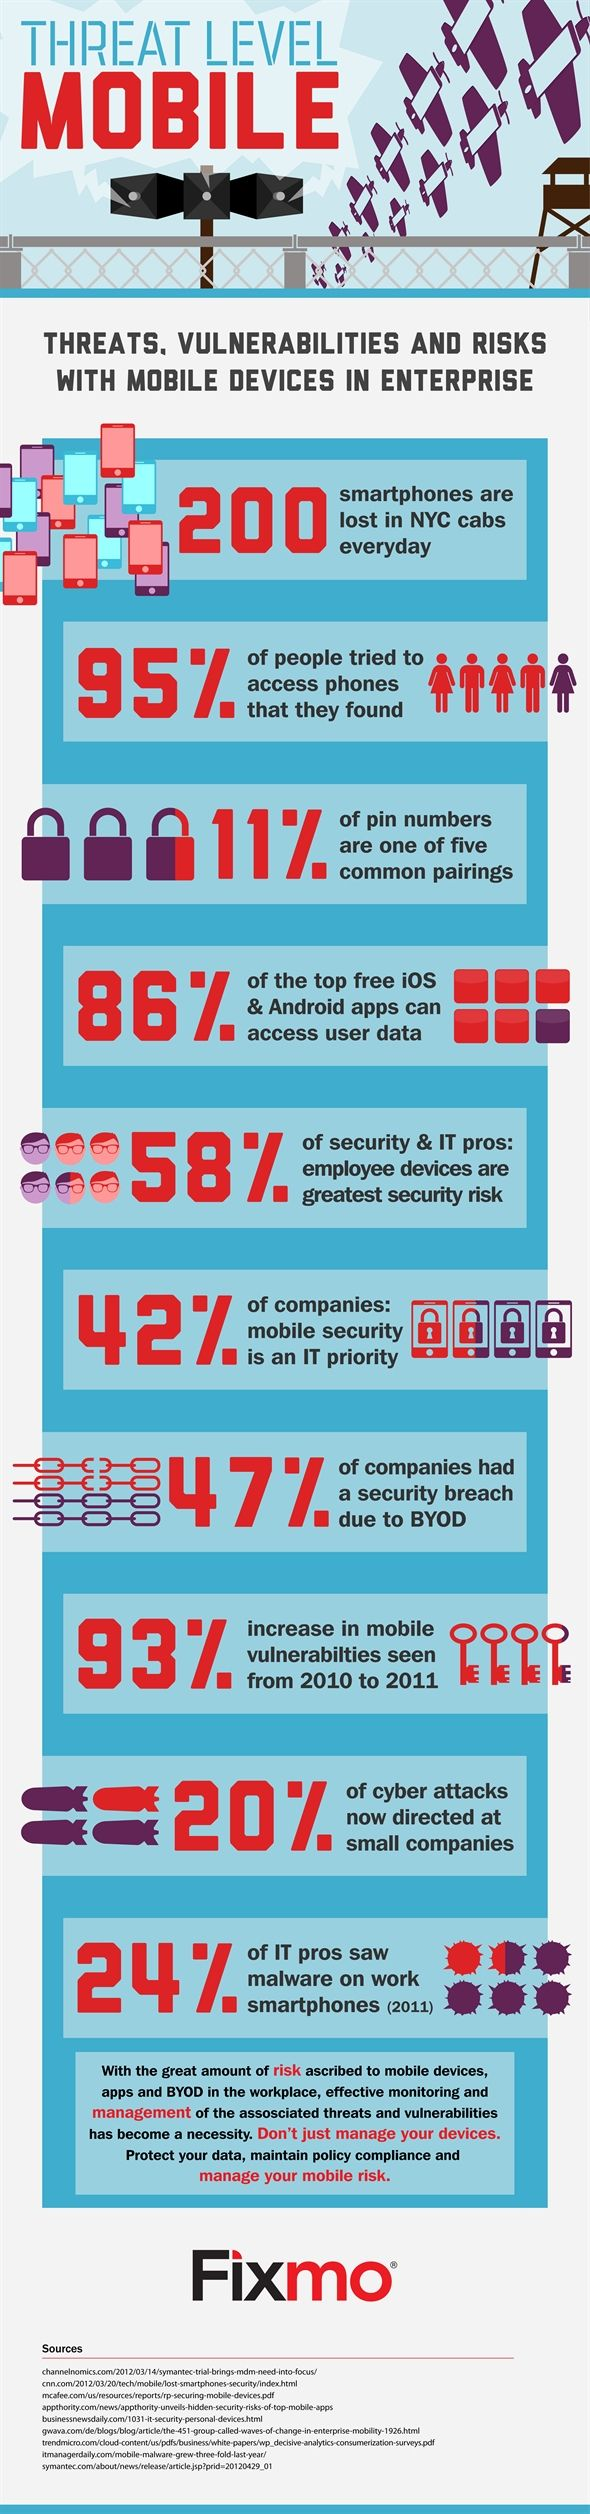 Threat Level Mobile [INFOGRAPHIC] threatlevelmobile small